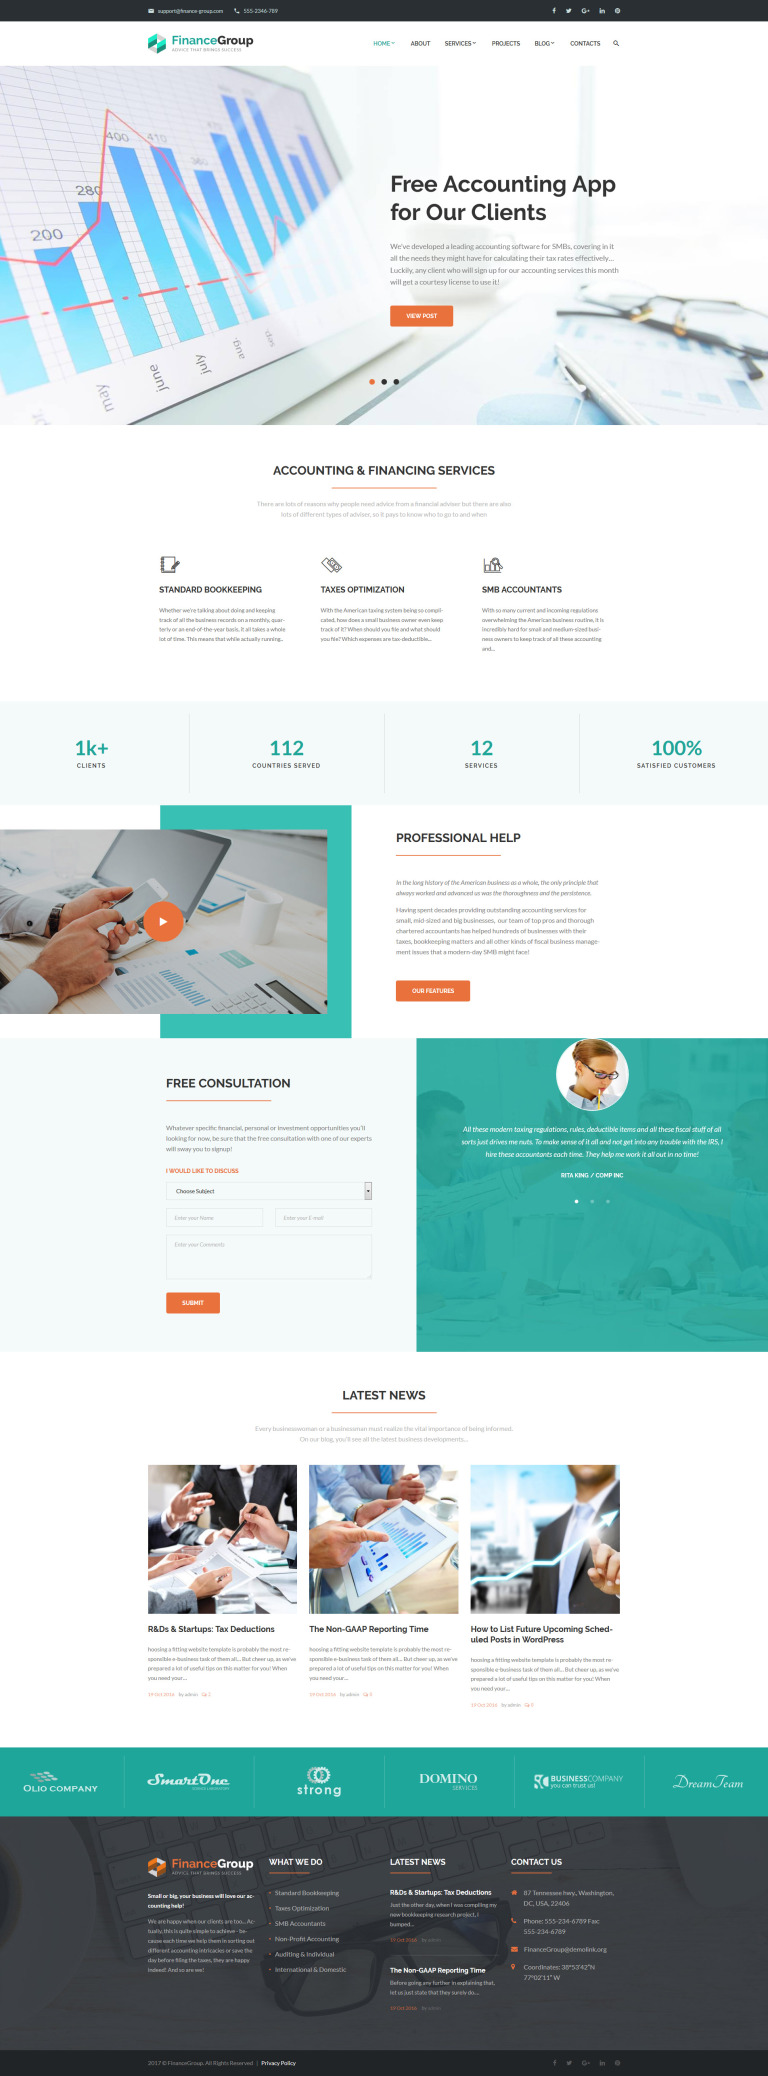 FinanceGroup - Accounting & Finance Business WordPress Theme New Screenshots BIG